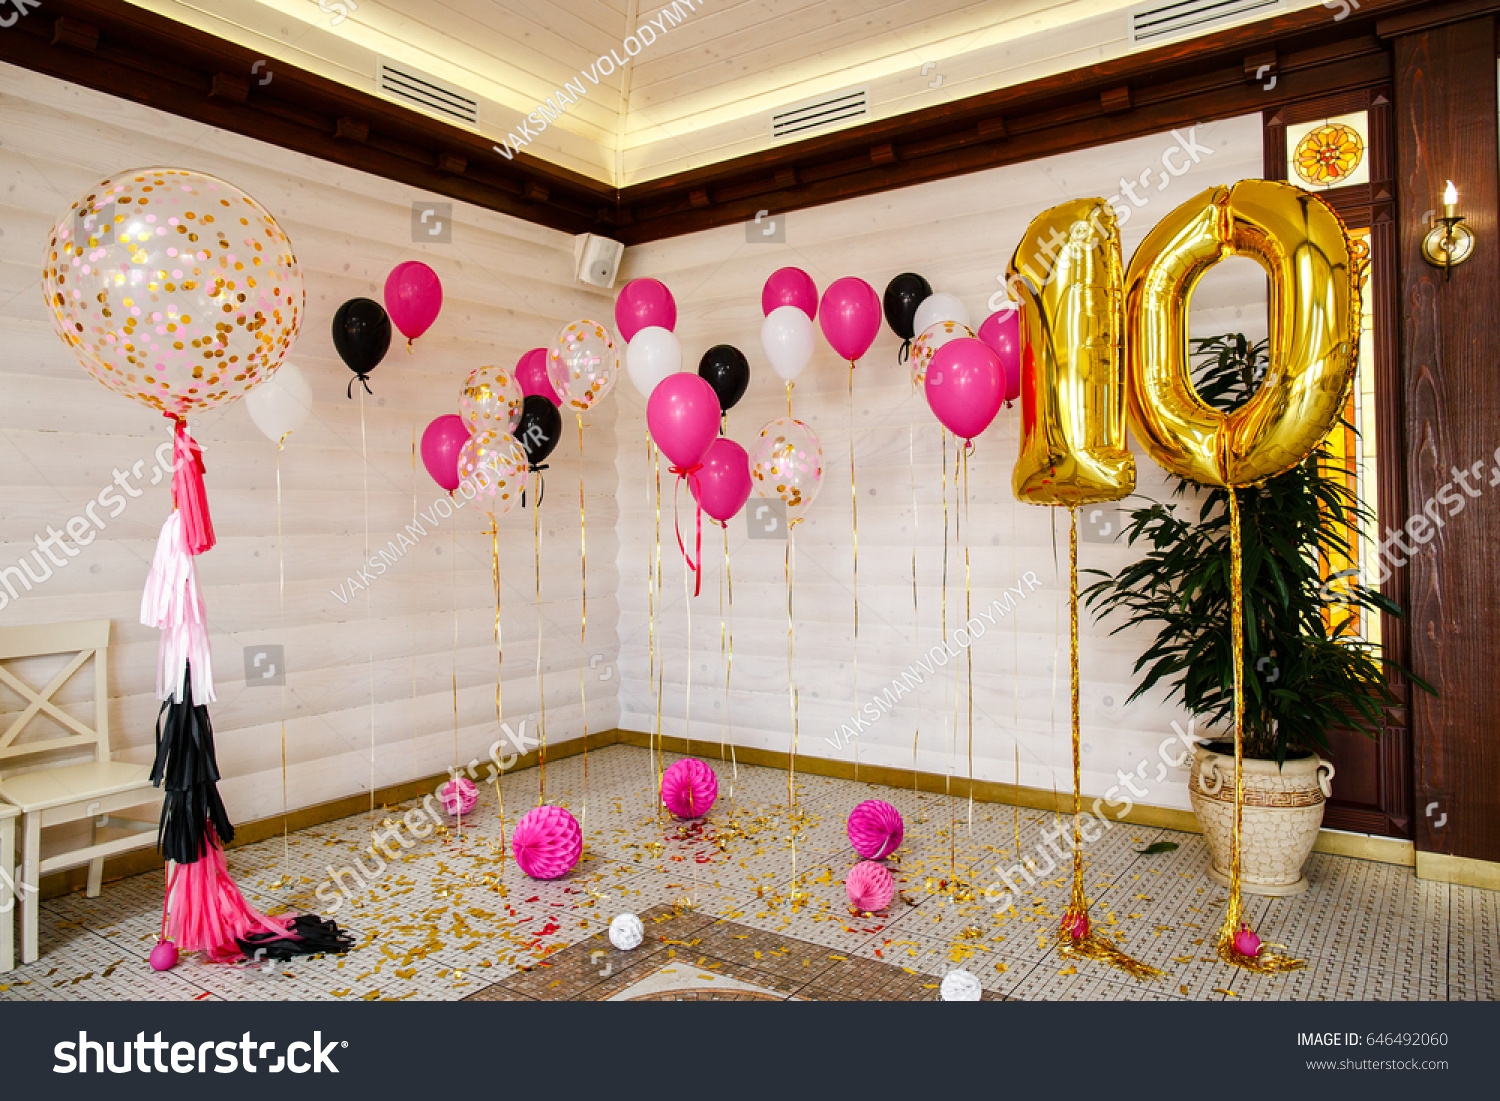 Balls And Balloons In Room Decorated For Birthday Party